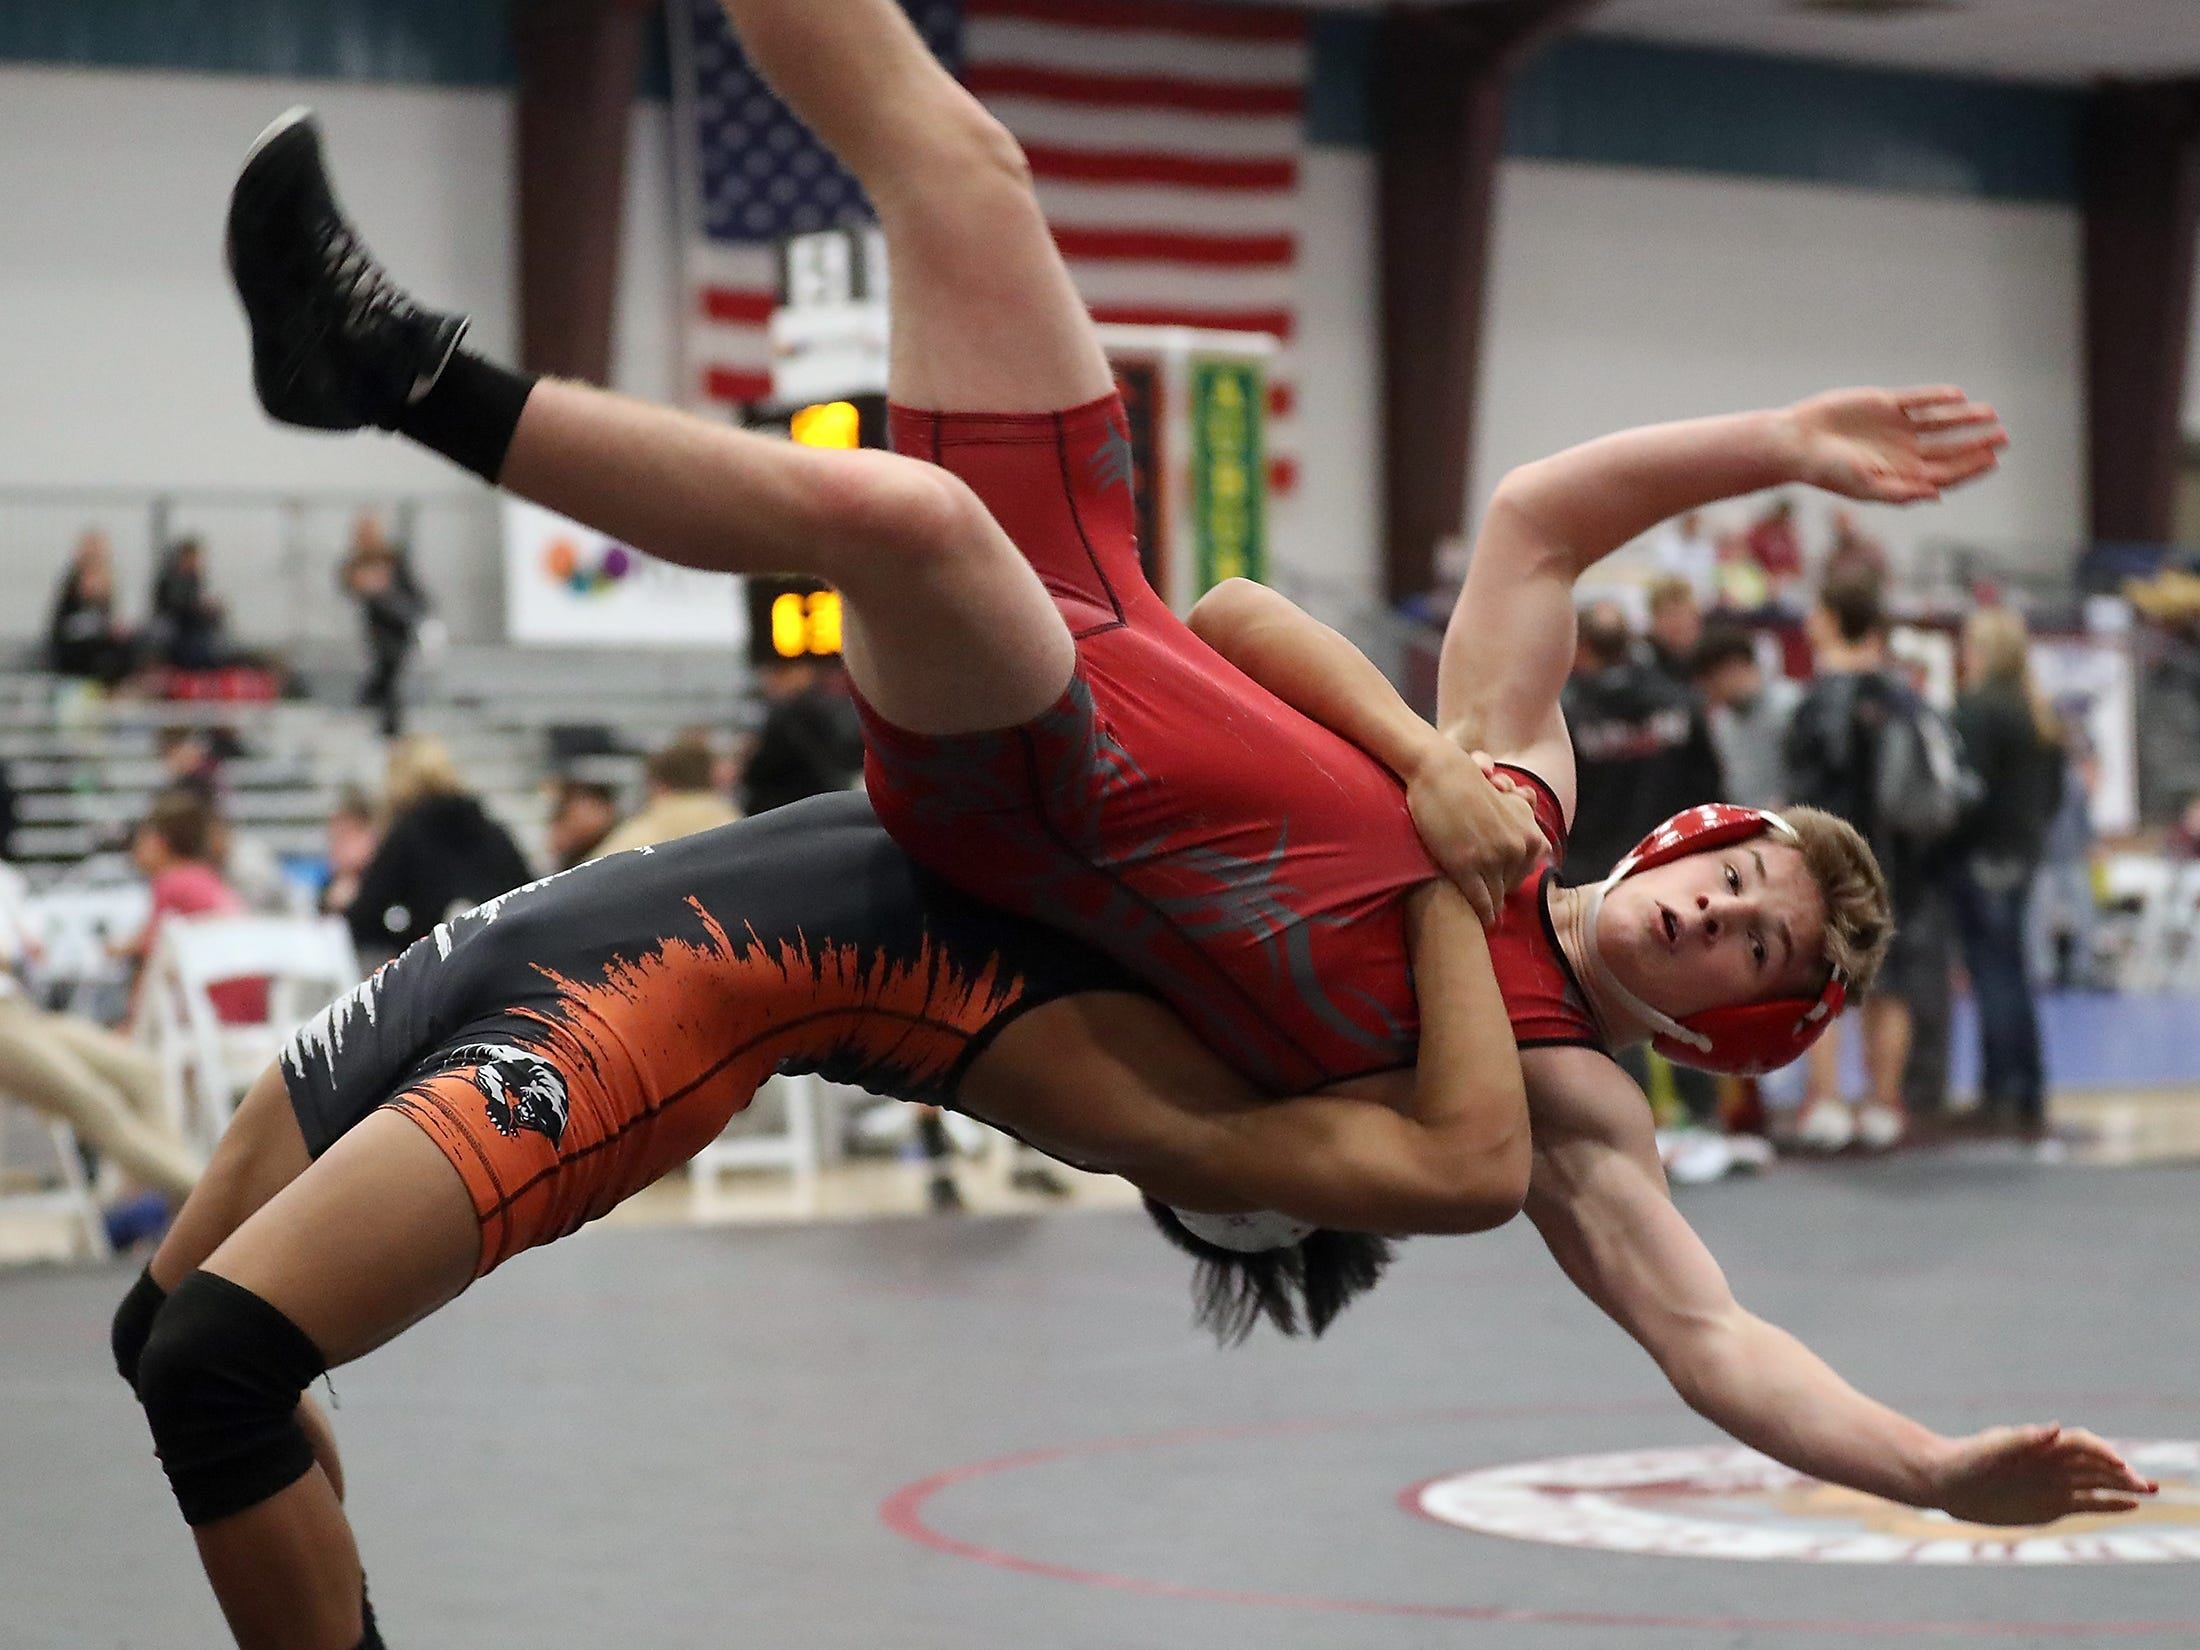 Central Kitsap's Shayne Hew-Len flips Mount Si's Braedon Haynie during their 132-pound bout Olympic Duals at the Kitsap Sun Pavilion in Silverdale on Saturday, December 8, 2018.